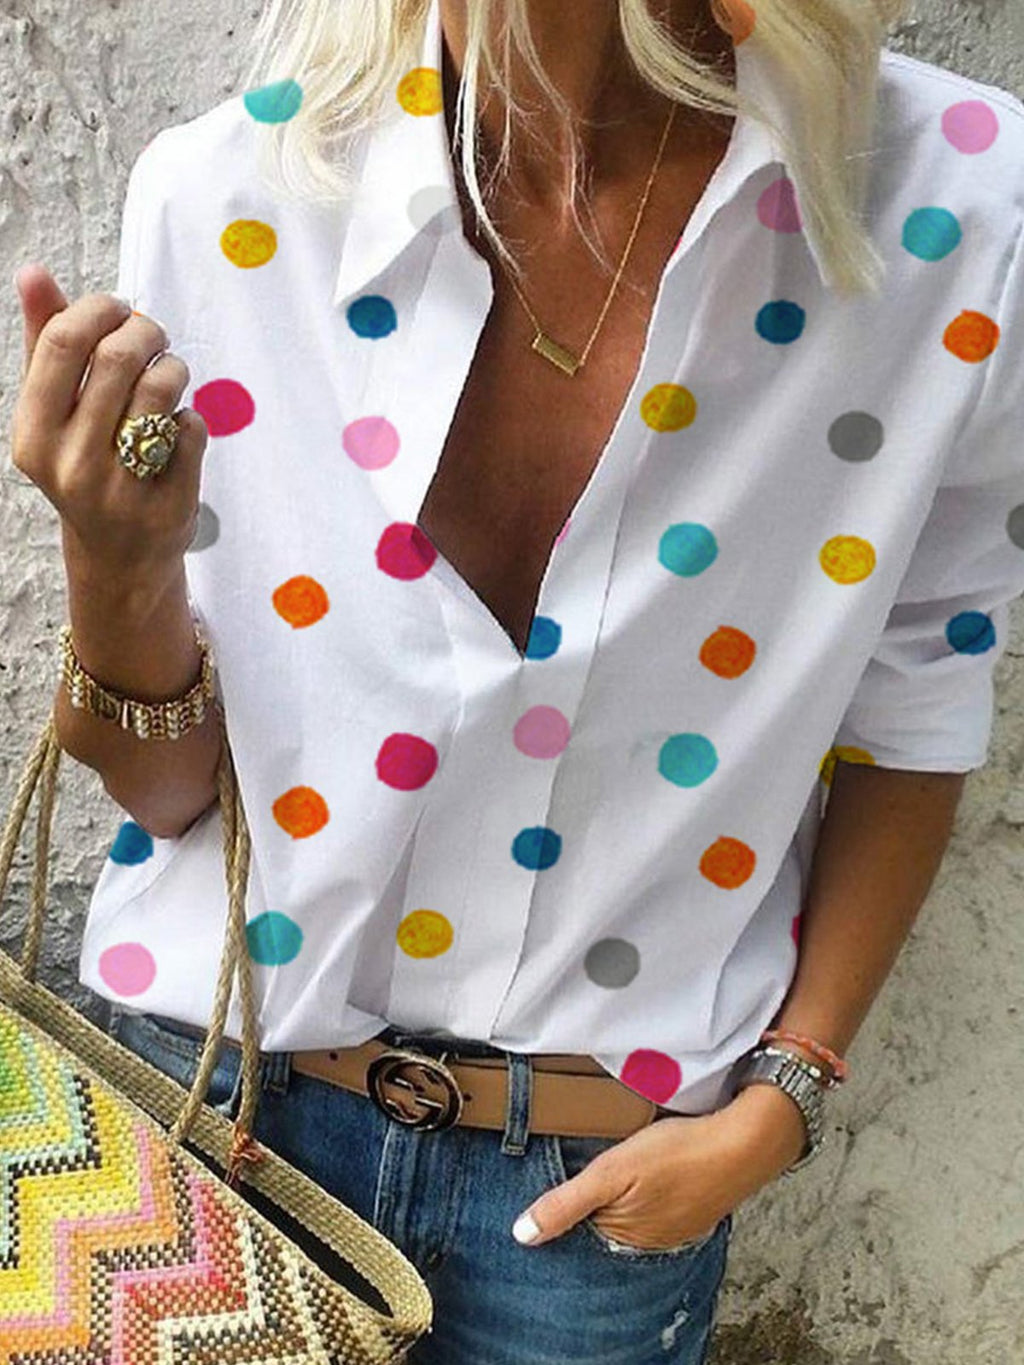 Long Sleeve Polka Dots Floral-Print Casual Shirts & Tops RIKKISHOP